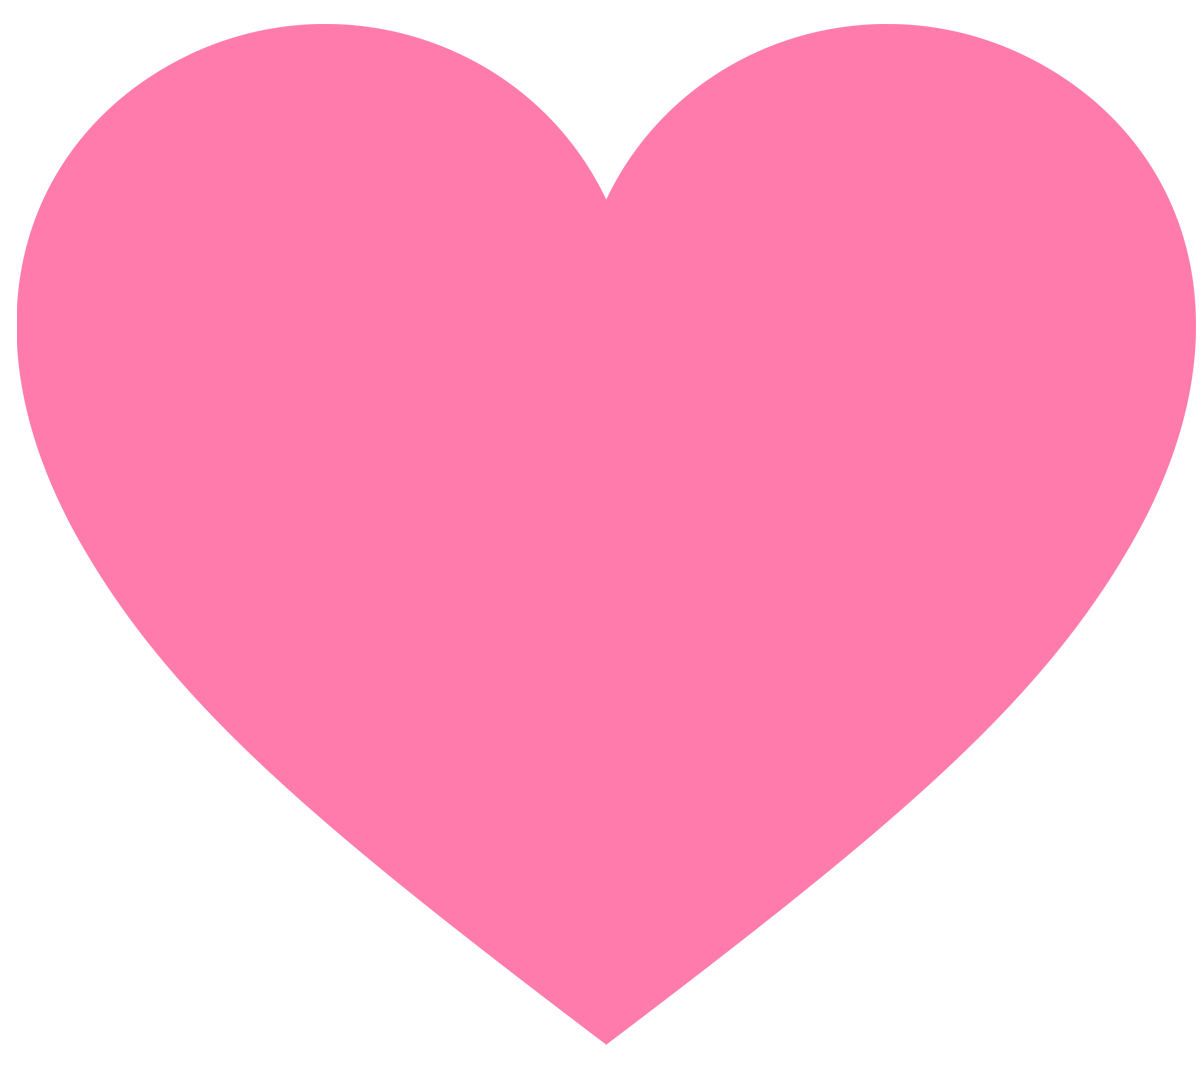 An image of a heart, click it to show the offer